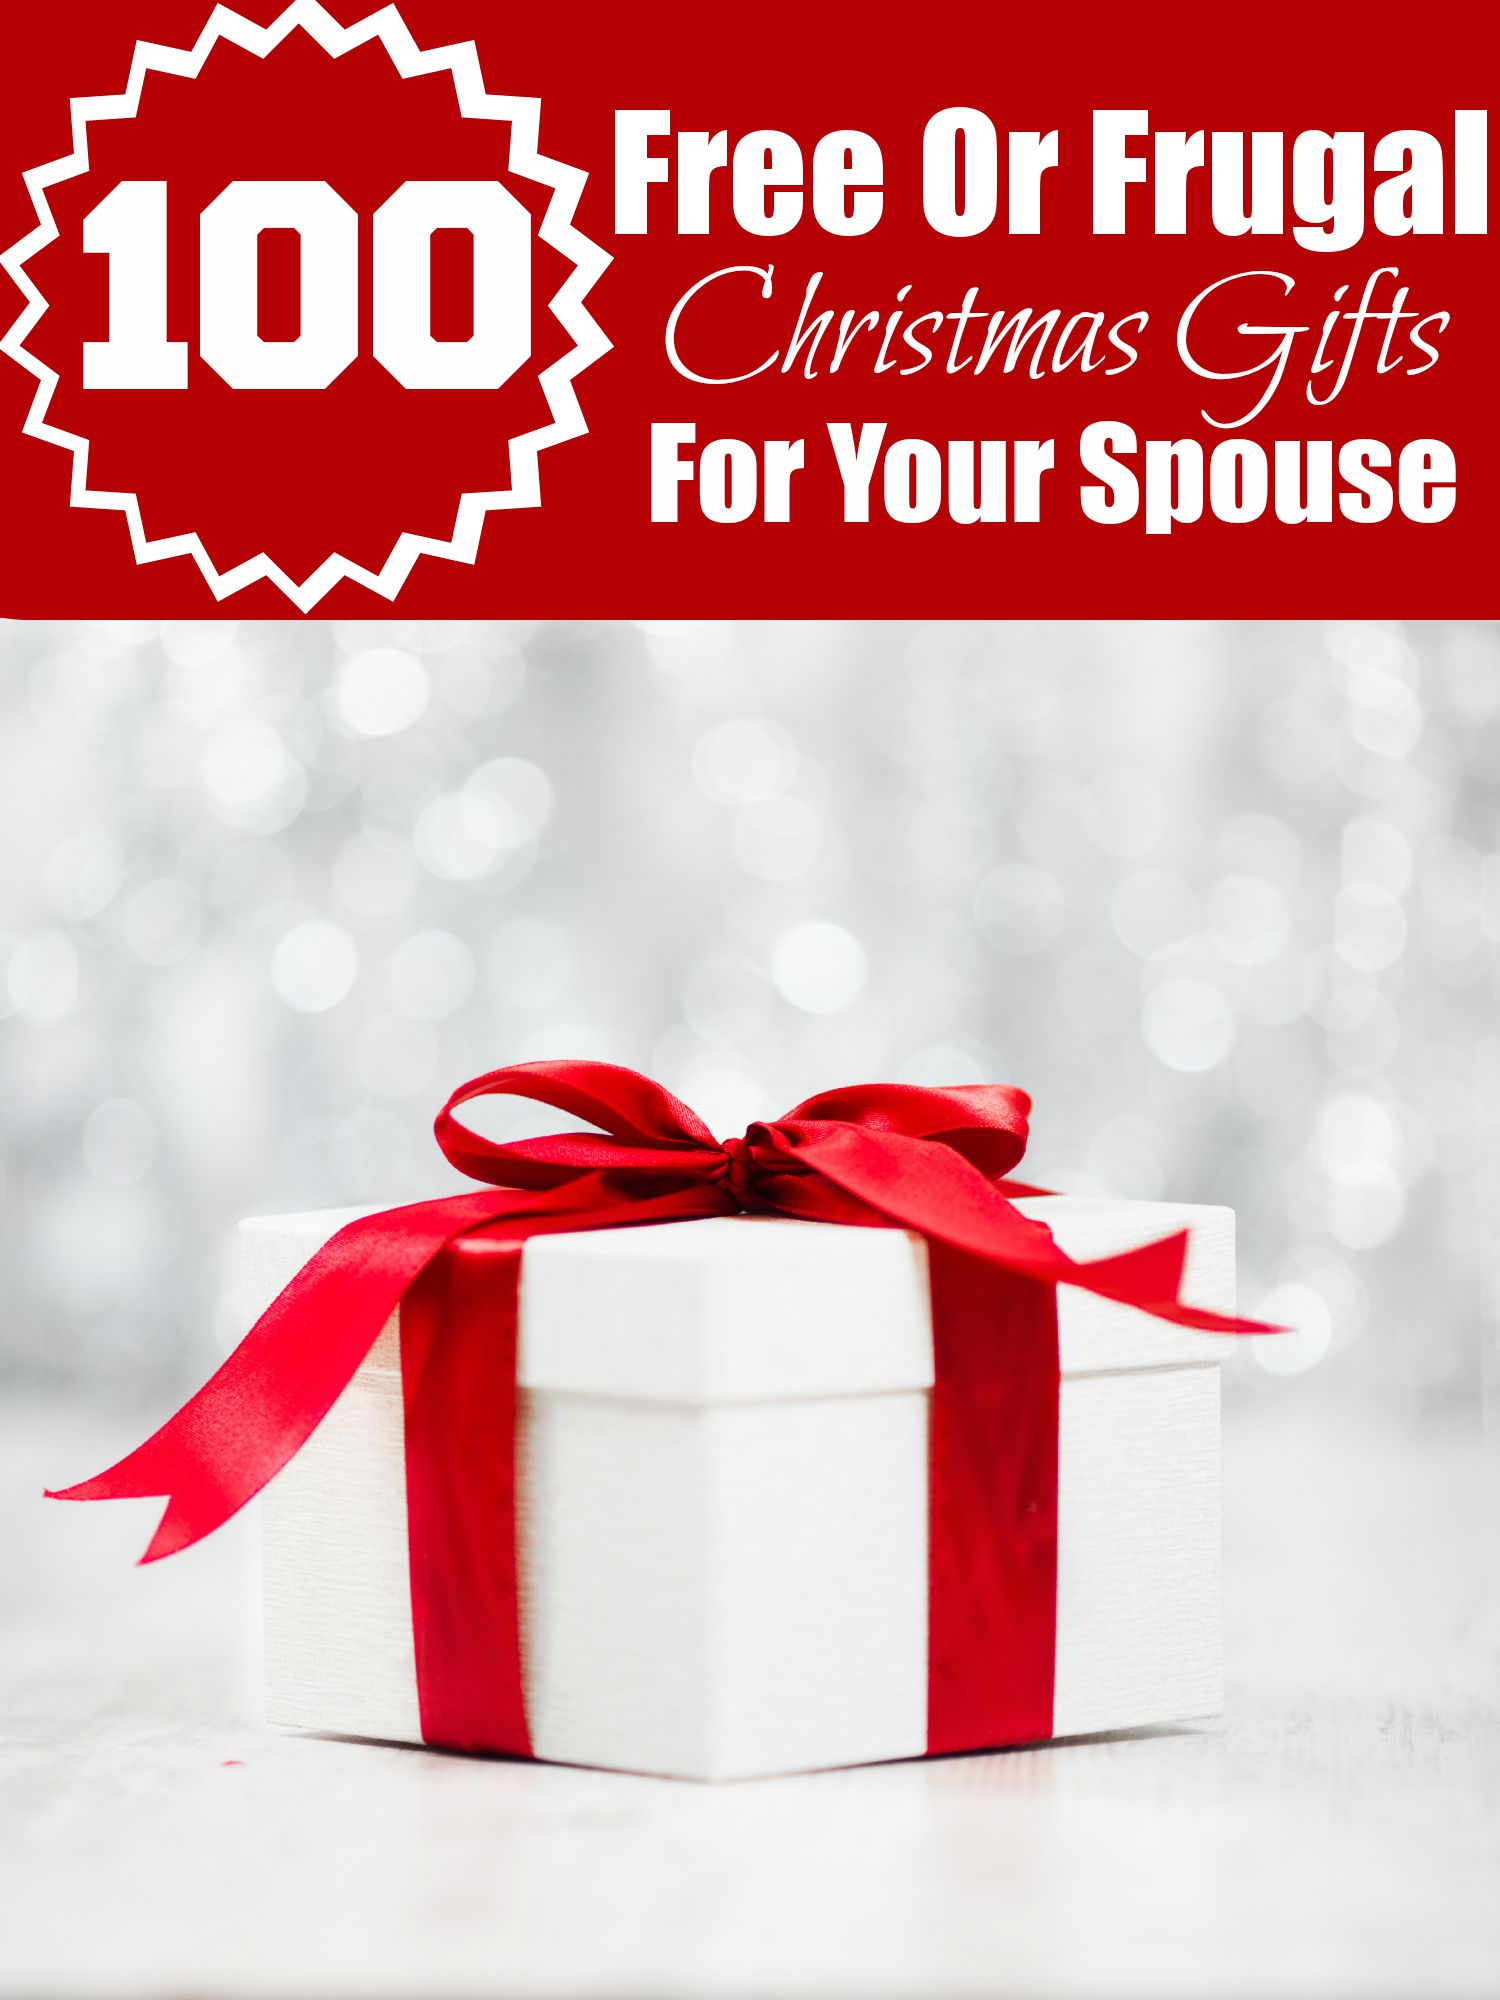 100 Free Or Frugal Christmas Gifts For Your Spouse